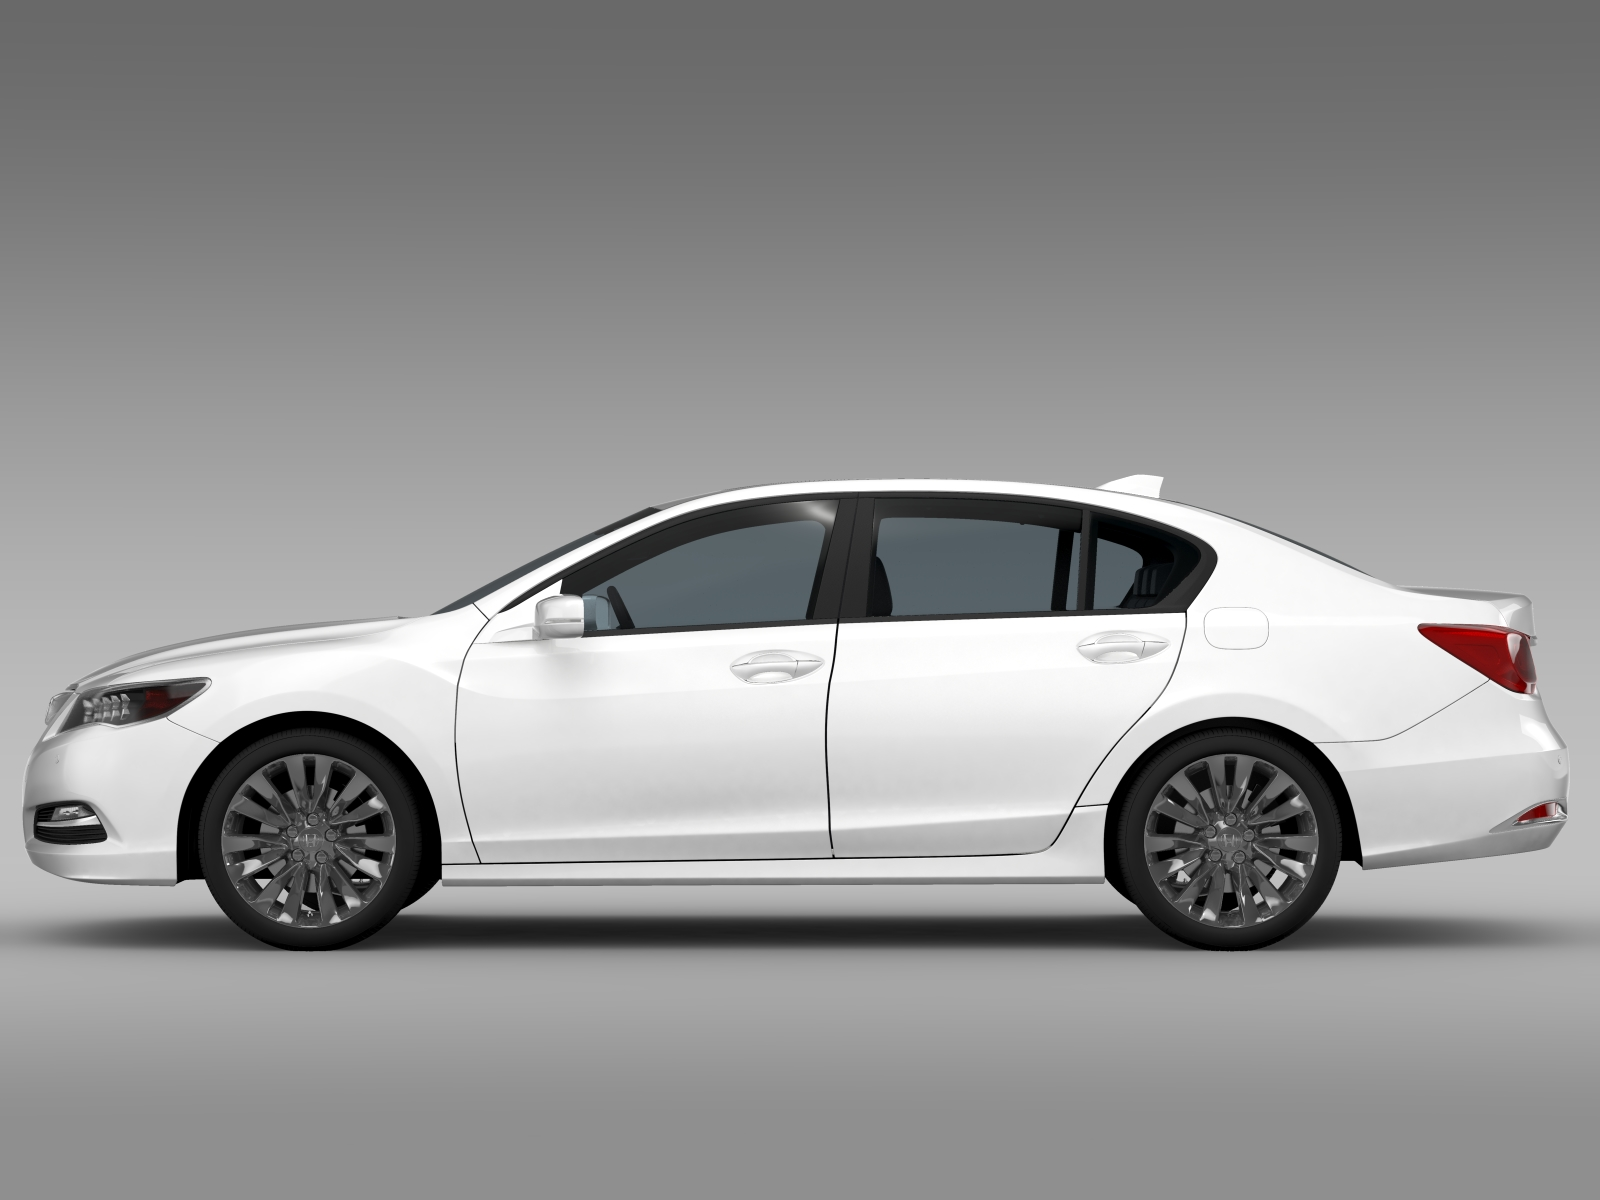 Honda Legend 2015 3d Model Flatpyramid